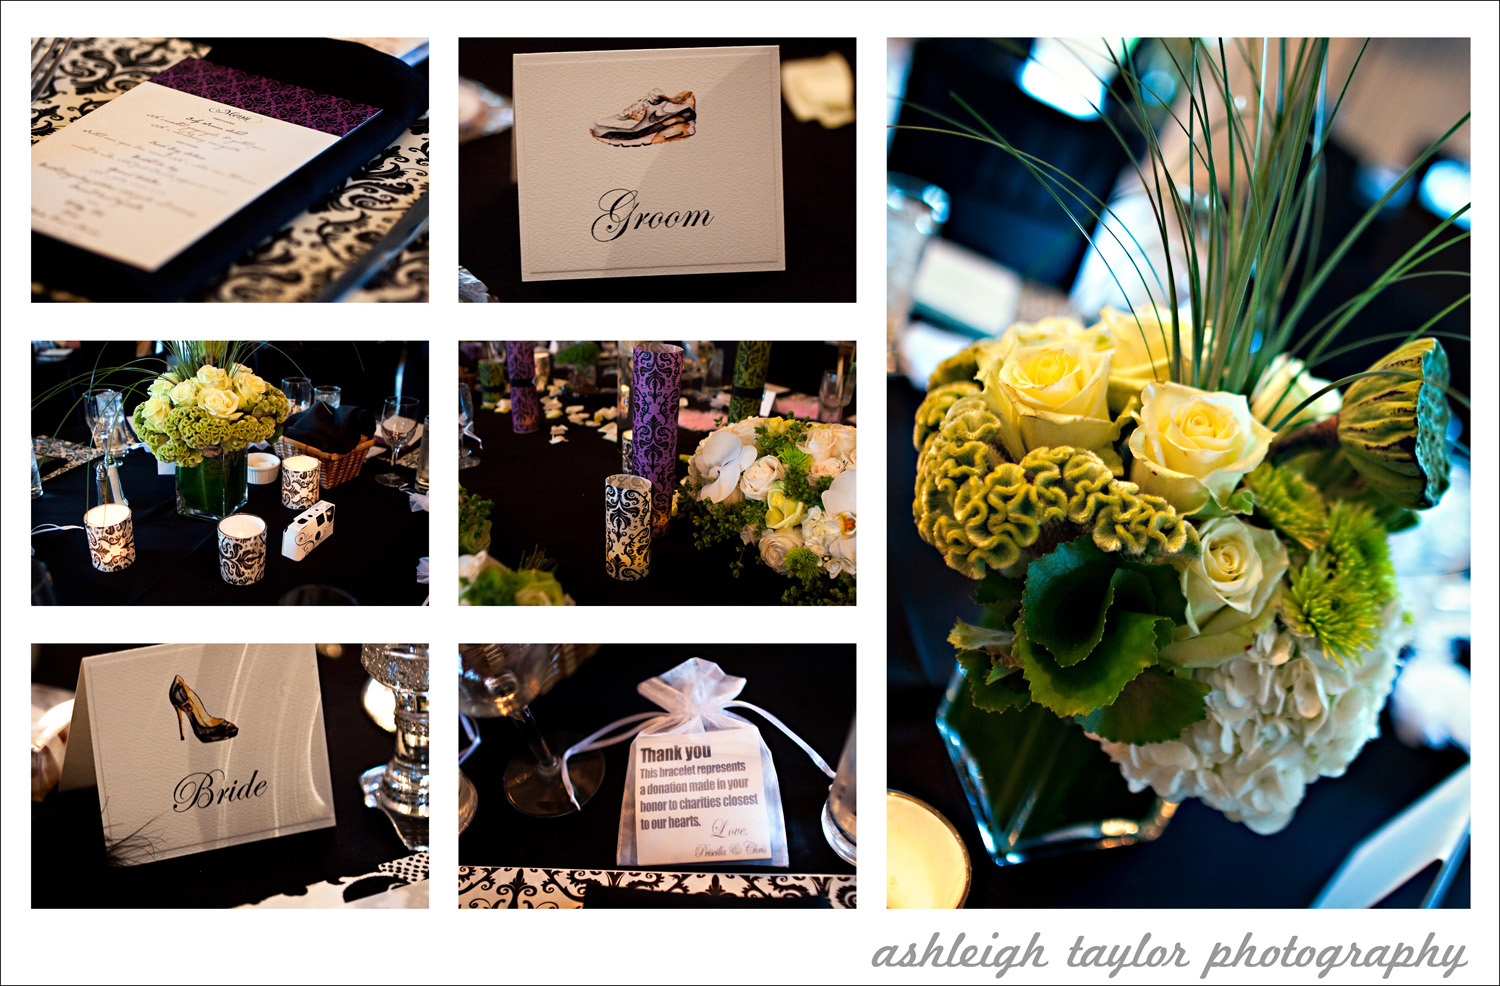 Inspiration, white, purple, green, black, And, Board, Club, Lake, Damask, Malibou, Mountain, Ashleigh taylor photography